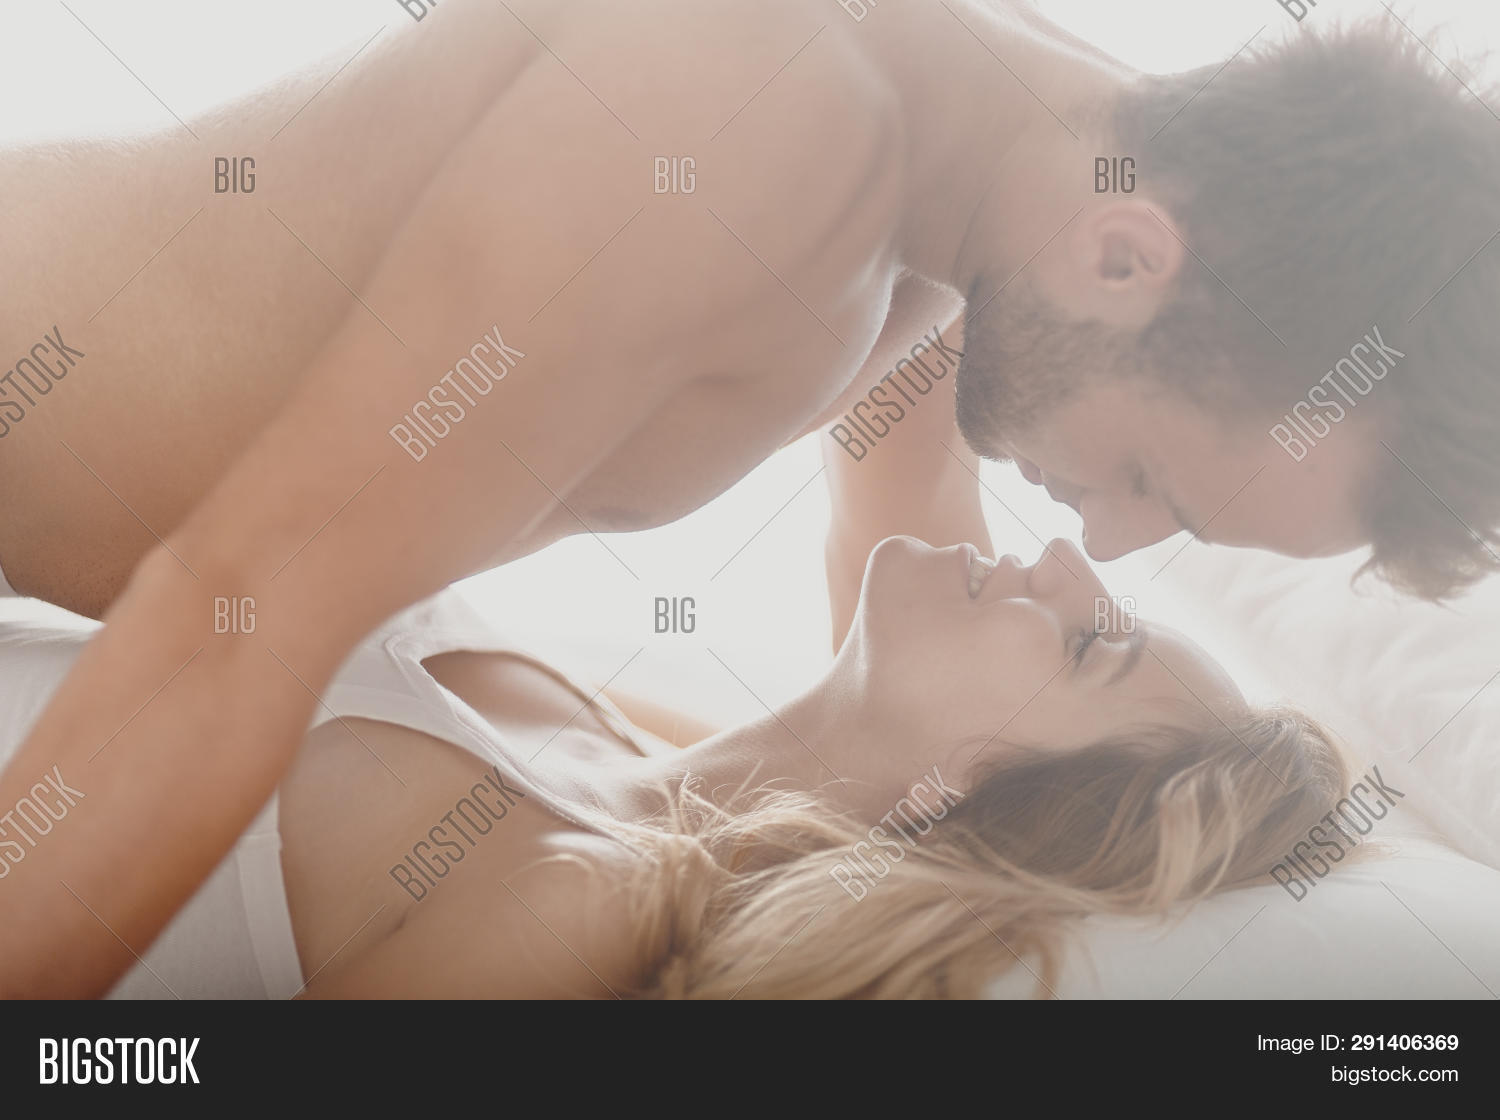 Real Romantic Couple Sex